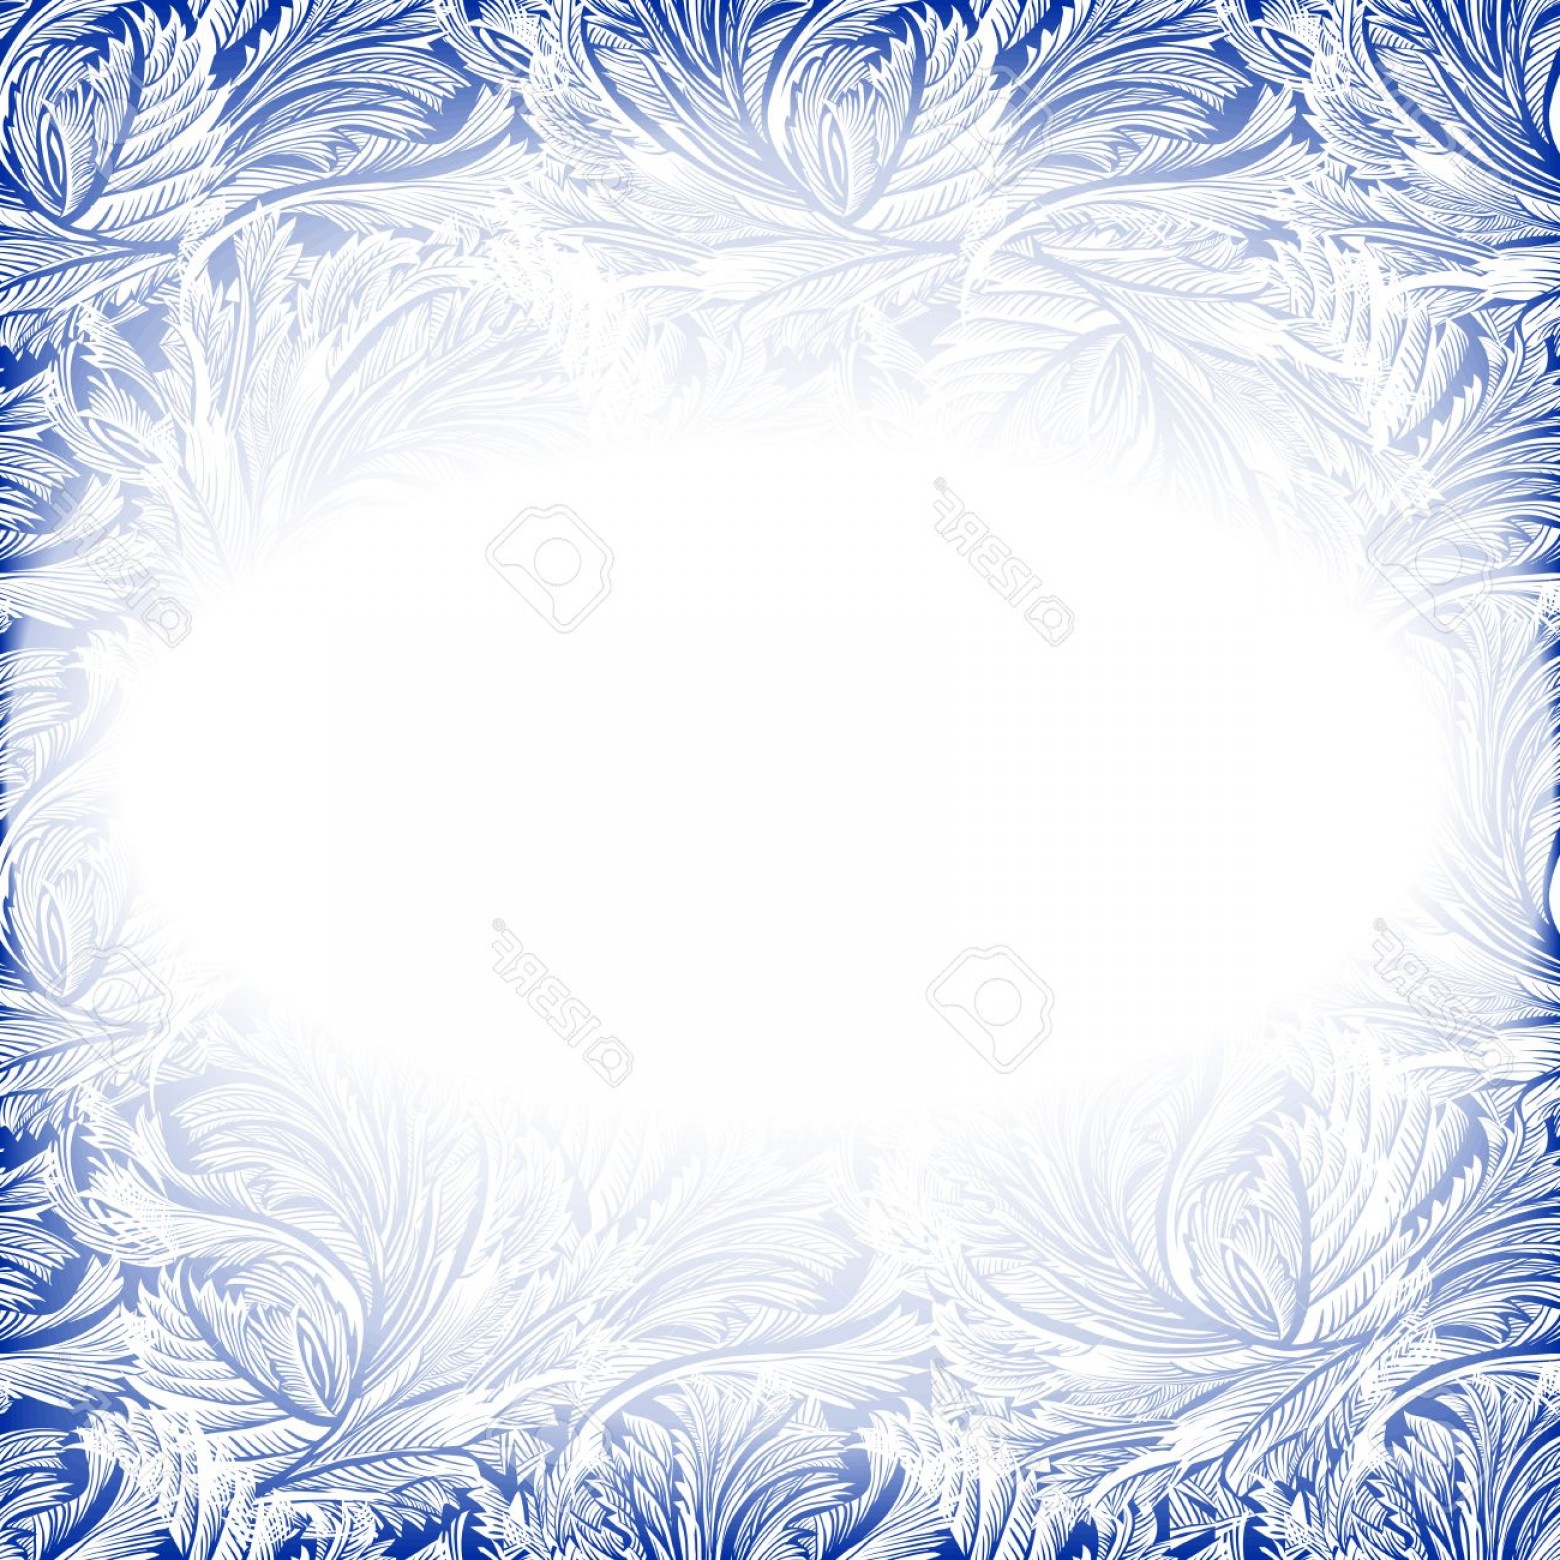 Frost Border Vector: Photostock Vector Frame Frozen Glass Decor Winter Holiday Blue Frost Background Blue Cyan And White Design Banner With